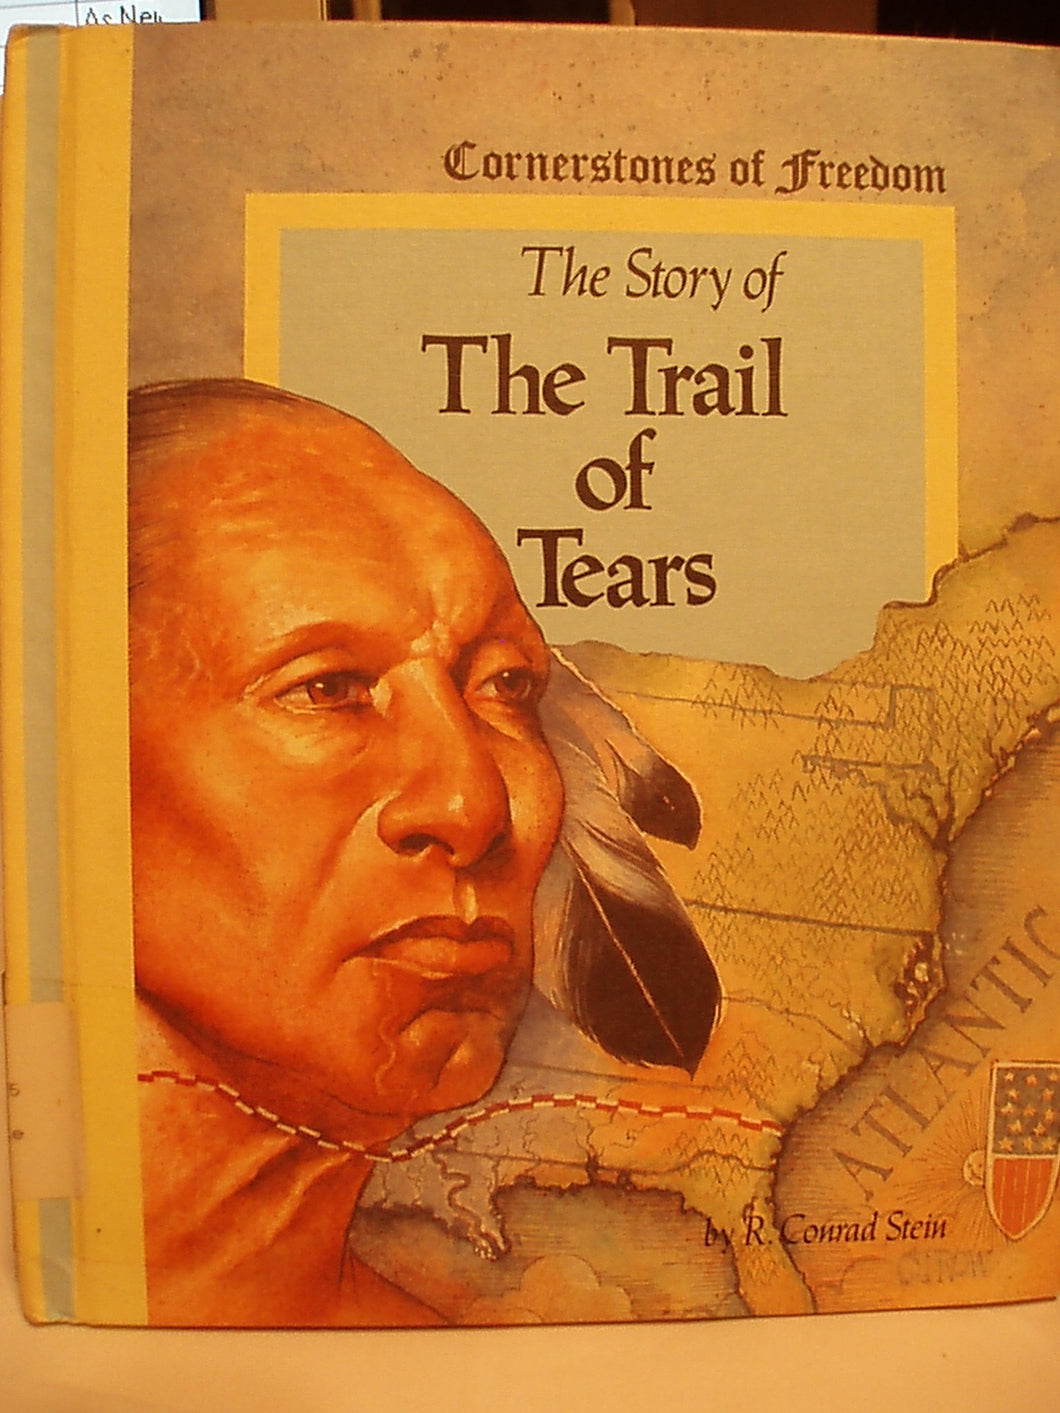 Story of the Trail of Tears (Cornerstones of Freedom) by R. Conrad Stein [Hardback]